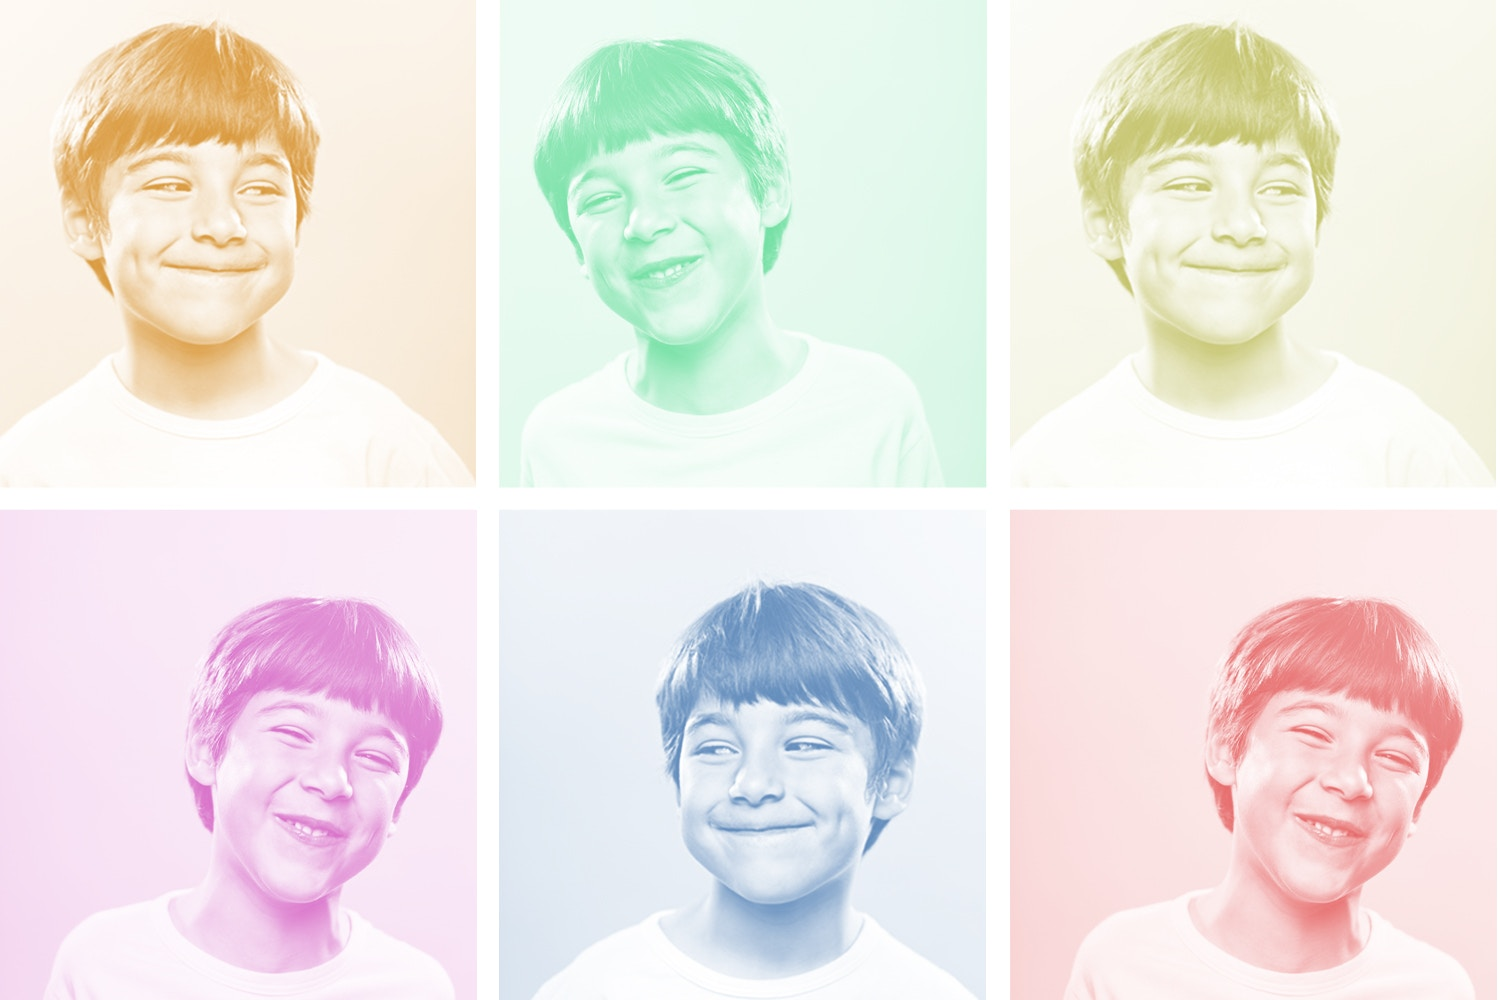 Young boy kid with different facial expressions set and diffreent backgroung color